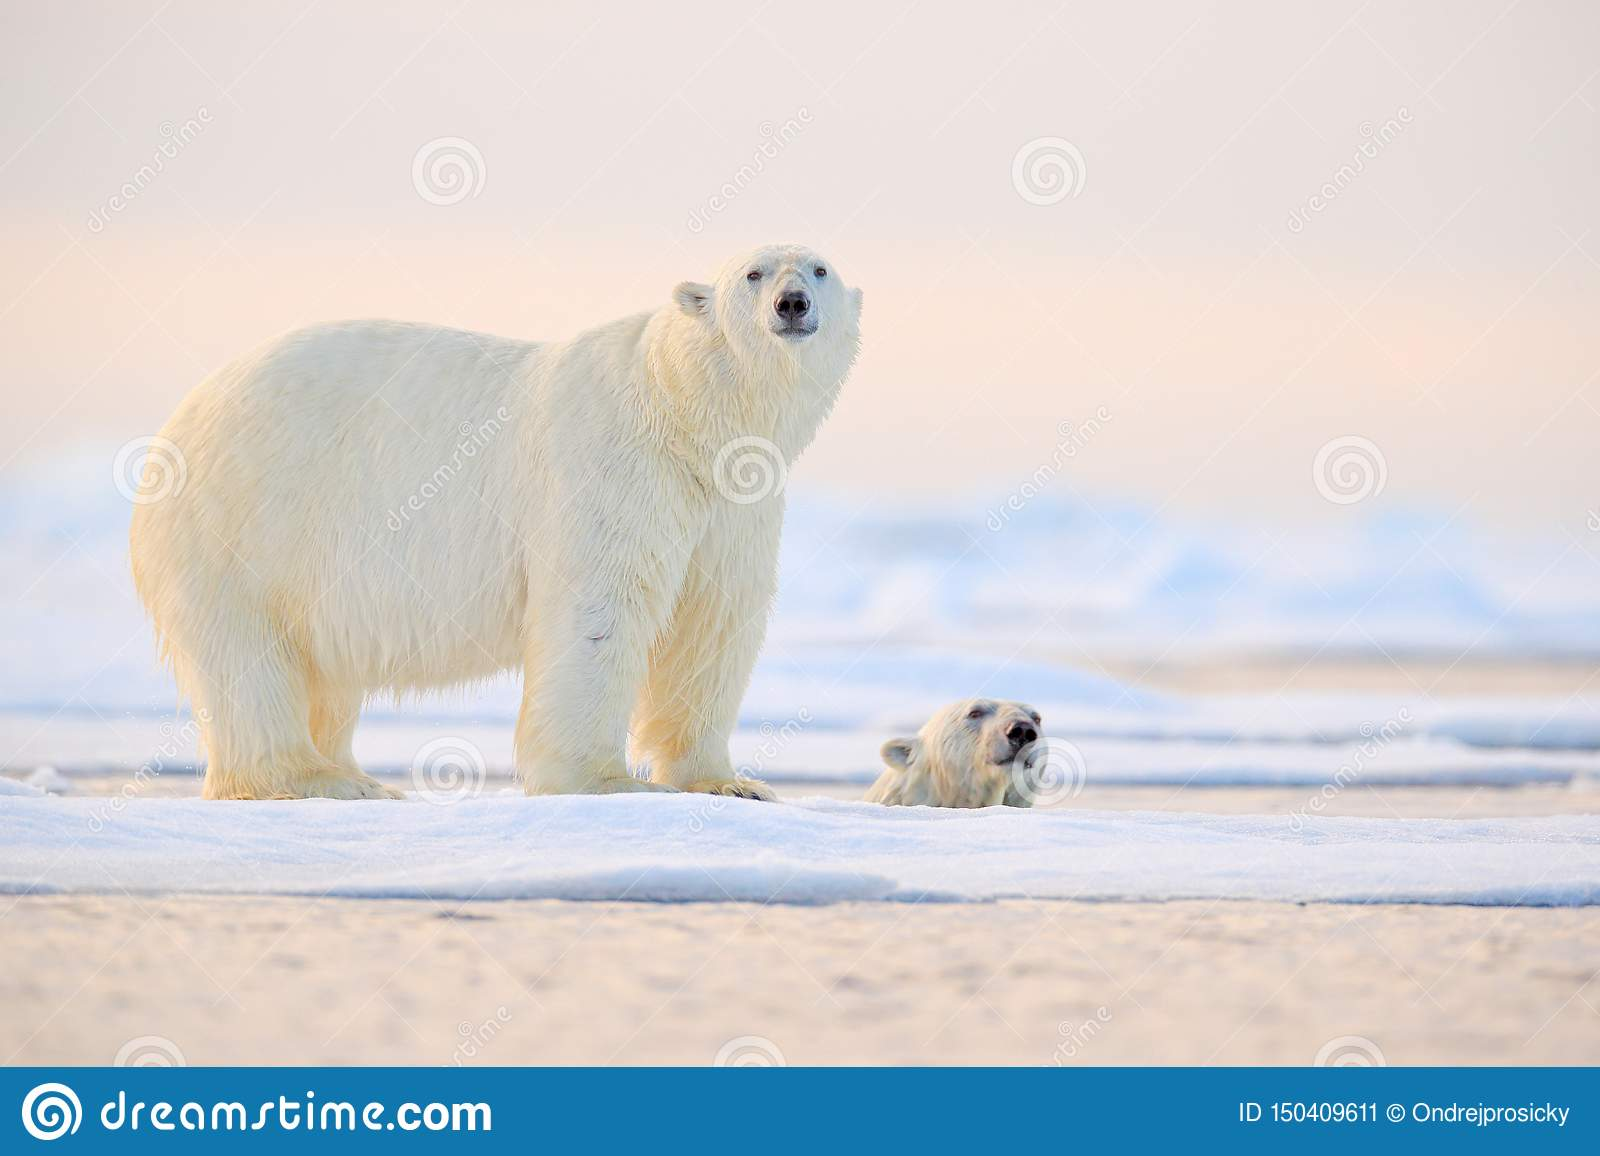 Polar bear swimming in water. Two bears playing on drifting ice with snow. White animals in the nature habitat, Alaska, Canada.